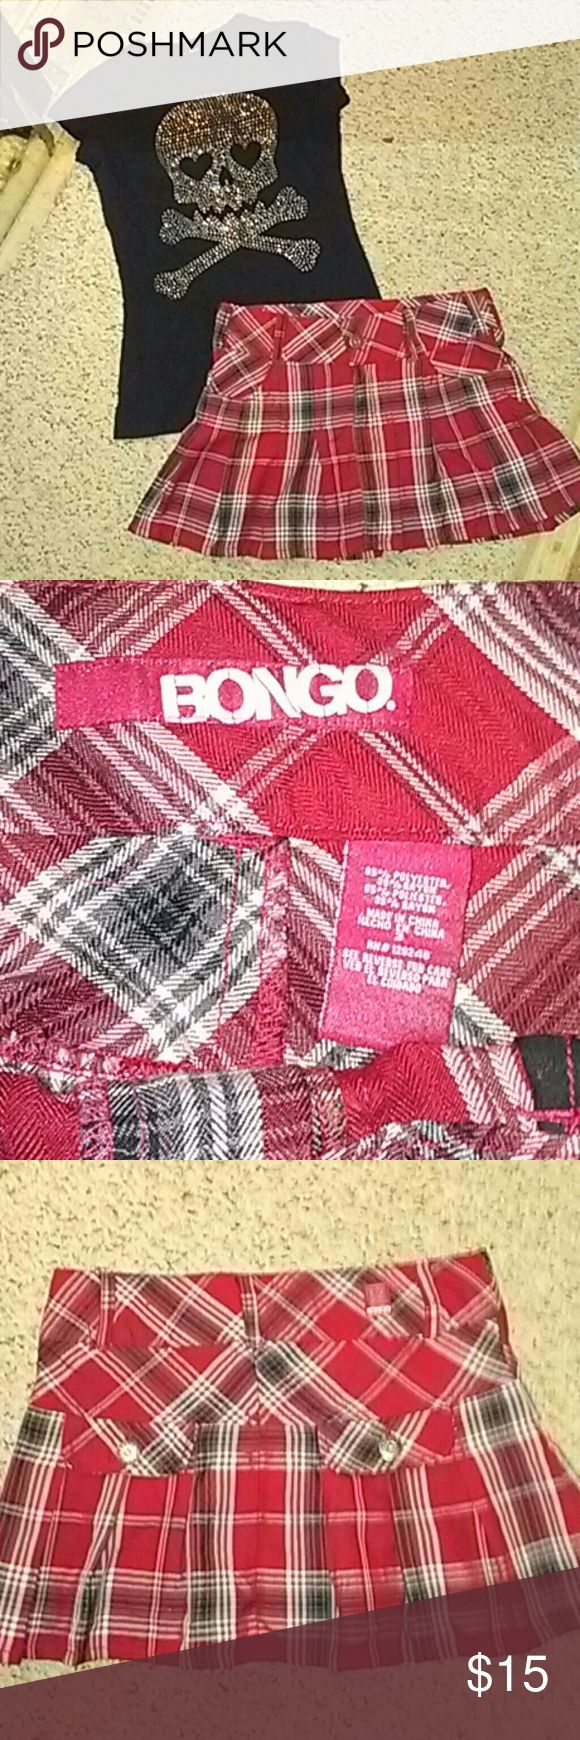 """Bongo mini skirt Cute and sexy, pleated school girl mini by Bongo! Red plaid and in amazing condition! Some fraying on one belt loop as pictured, but otherwise perfect. Two faux pockets in back and two small real pockets in front. Approx. 12"""" long. BONGO Skirts Mini"""